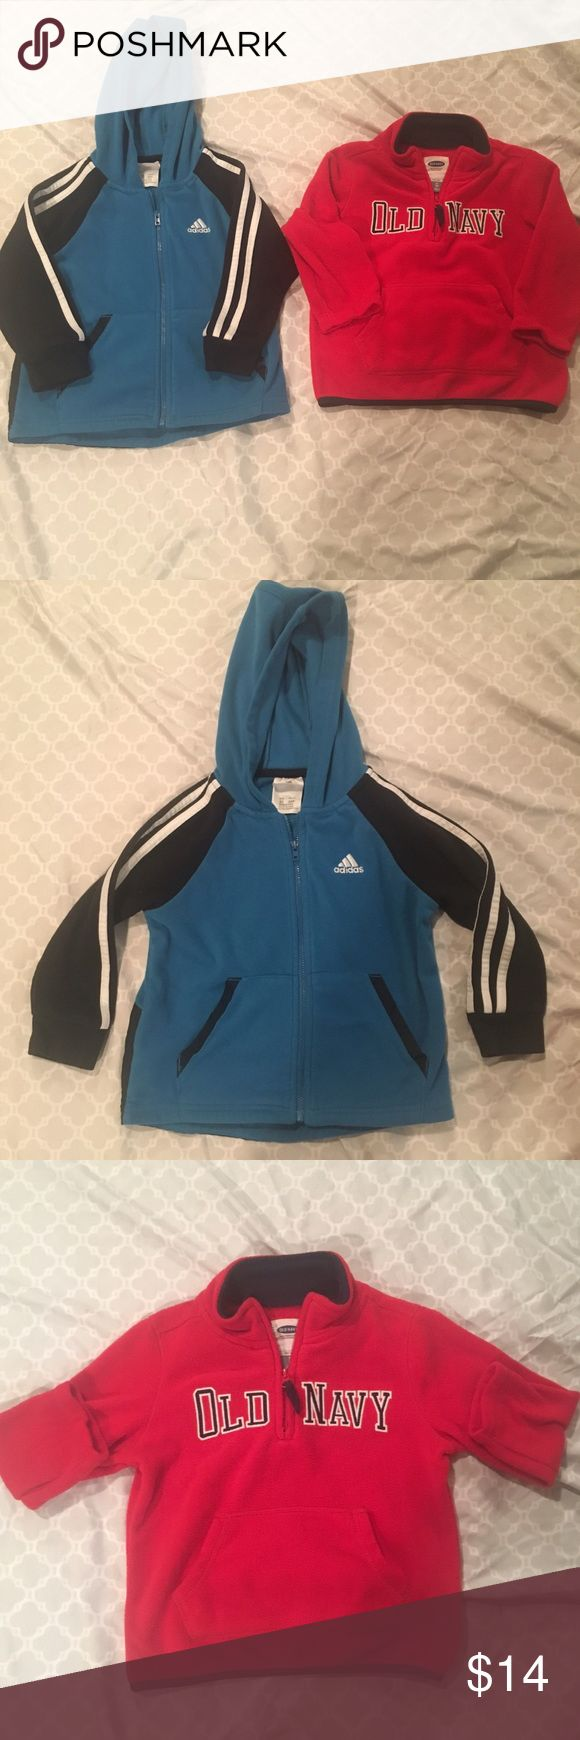 2 pc bundle boys 3T jacket/sweatshirt 2 piece bundle of boys size 3T. Jacket is adidas and half-zip sweatshirt is old navy. Both in great condition. *offers welcomed 💥buy two or more items from my closet for discounted shipping and discounted price! Other